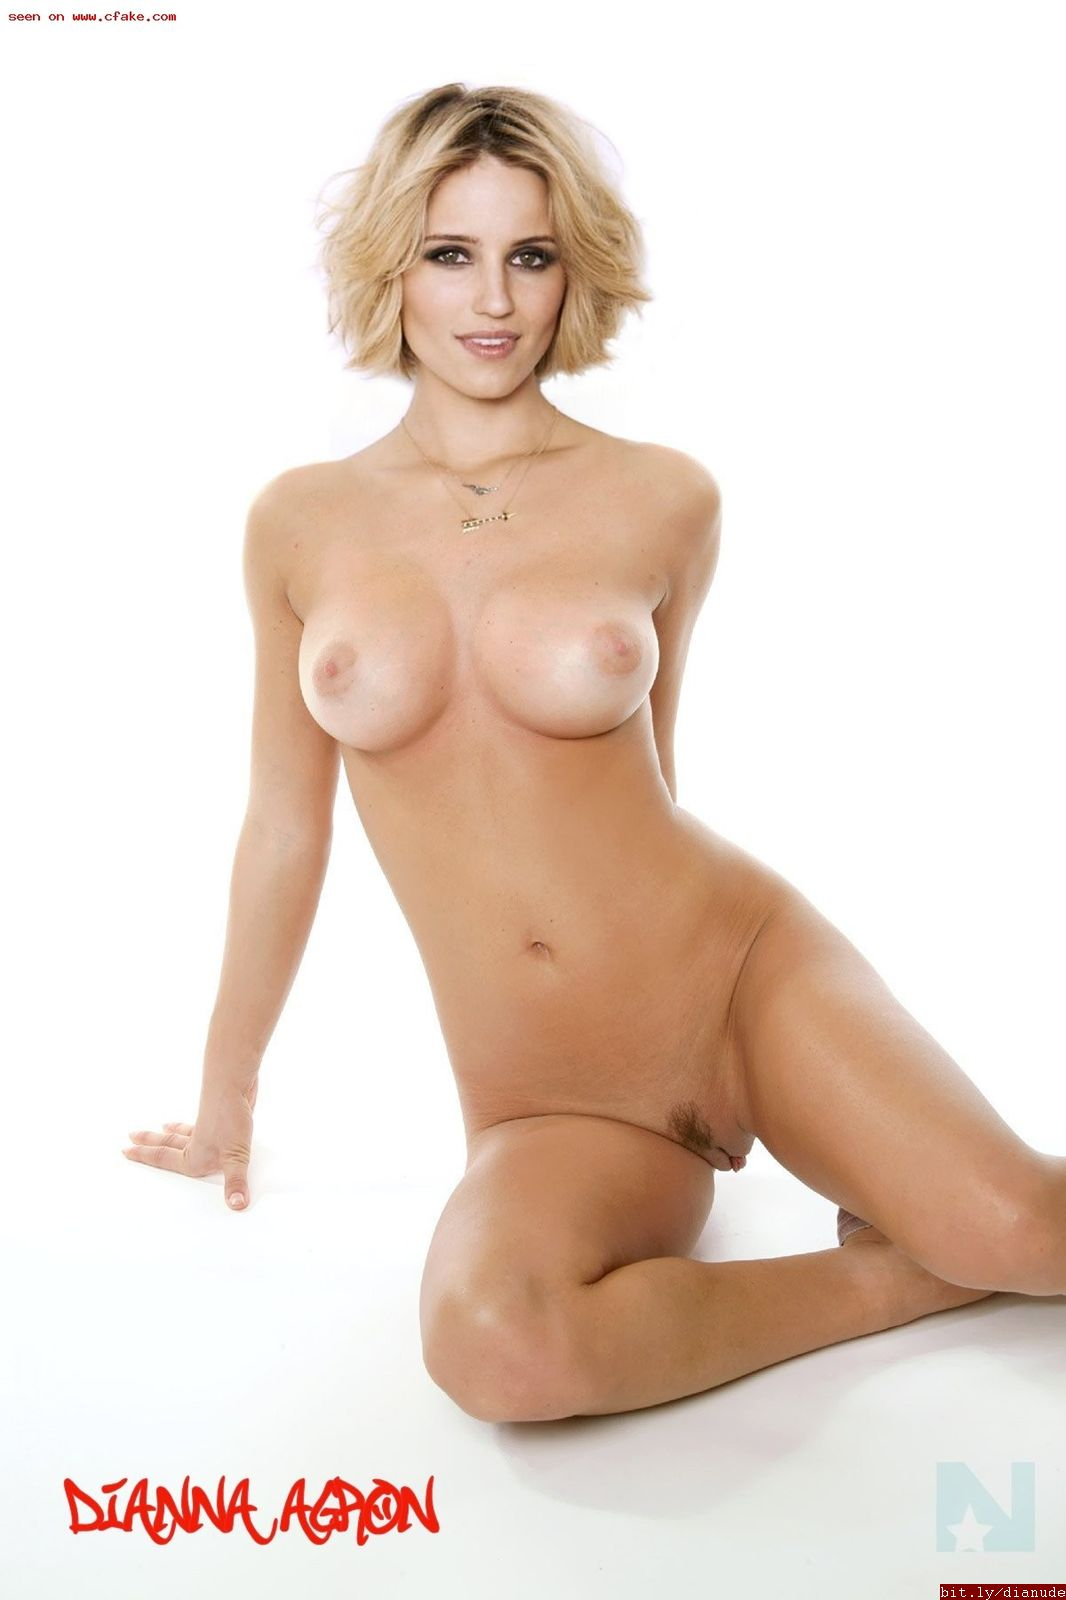 nude pics of dianna agron